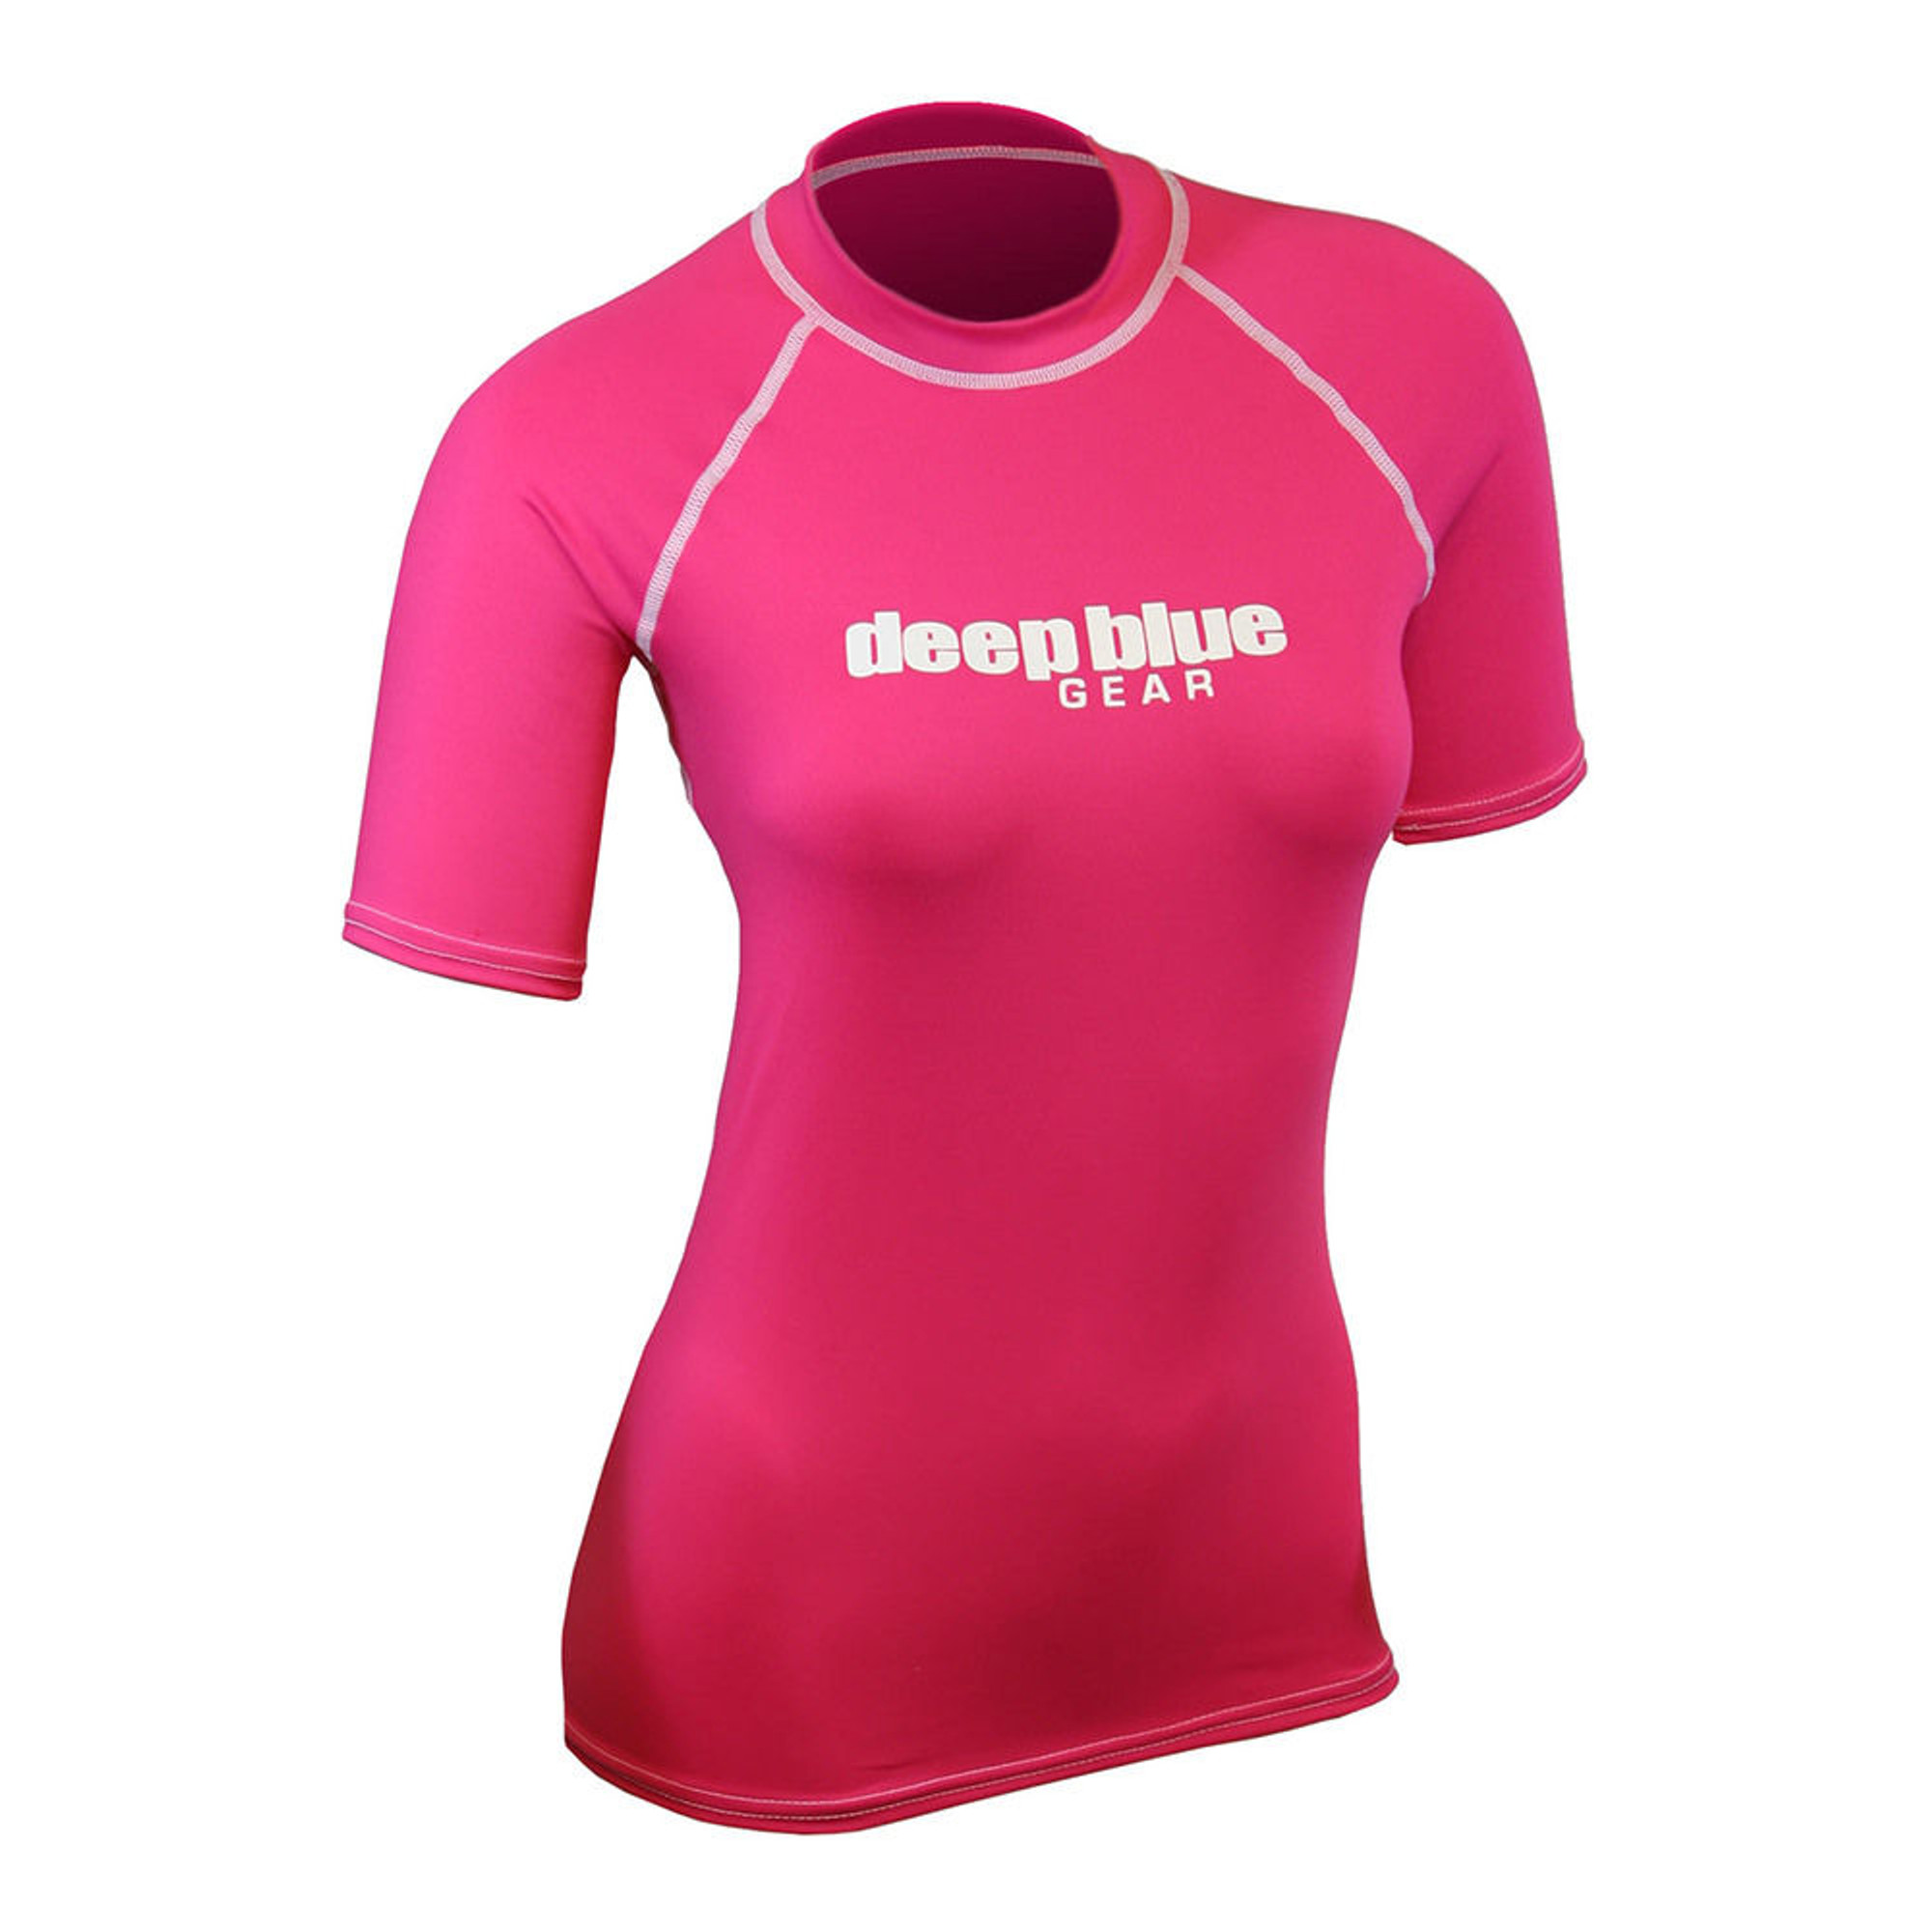 Women's Short Sleeve Rashguard